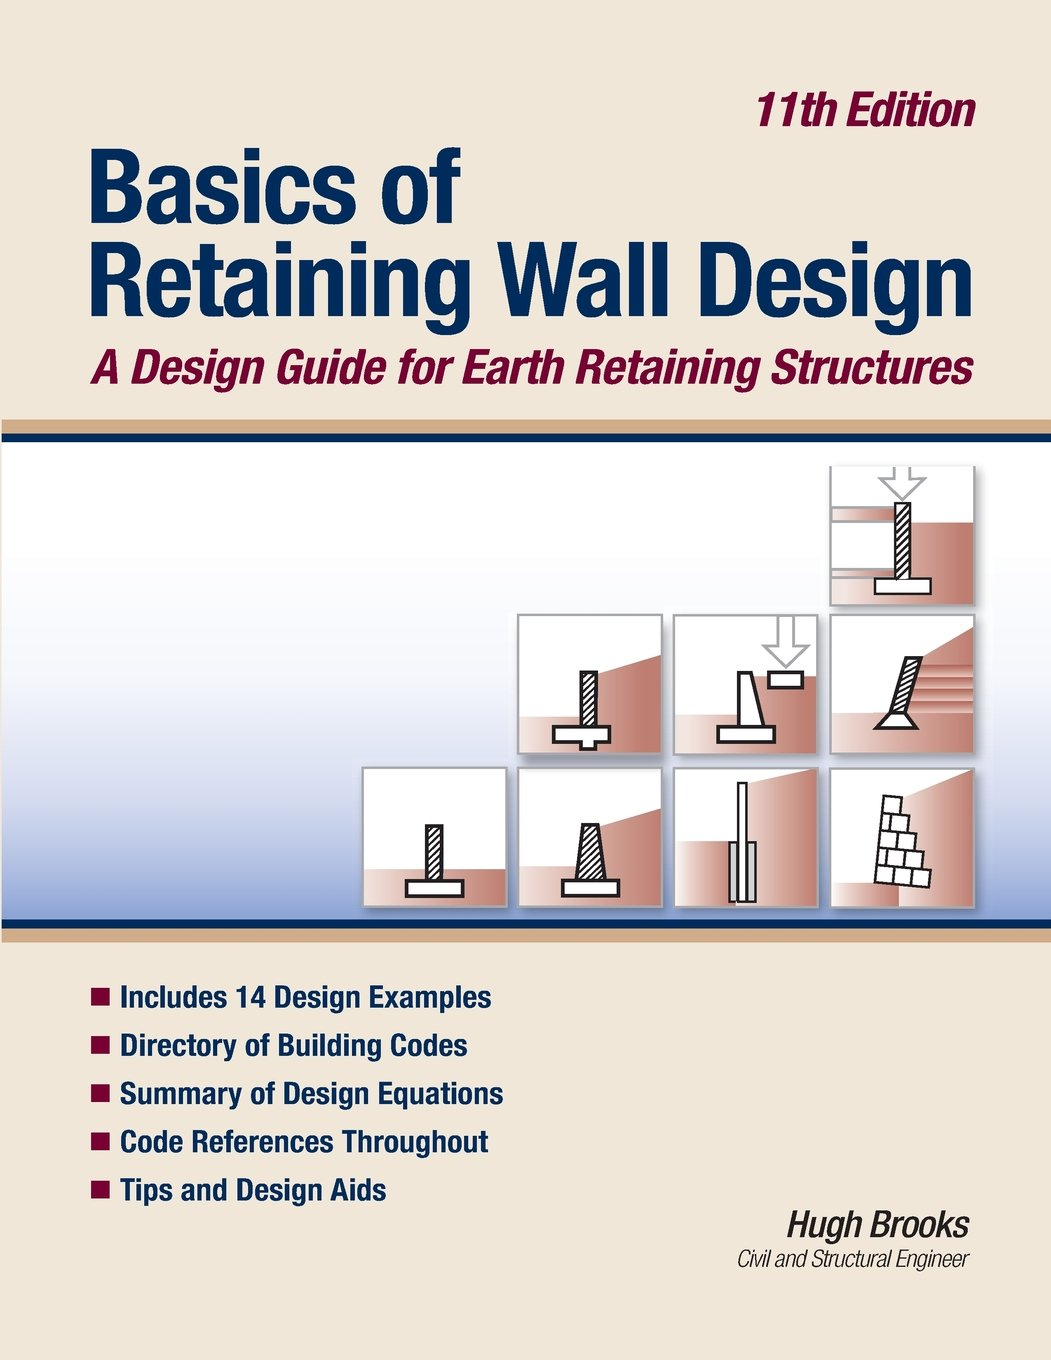 Basics of Retaining Wall Design 14th Edition: A design guide for